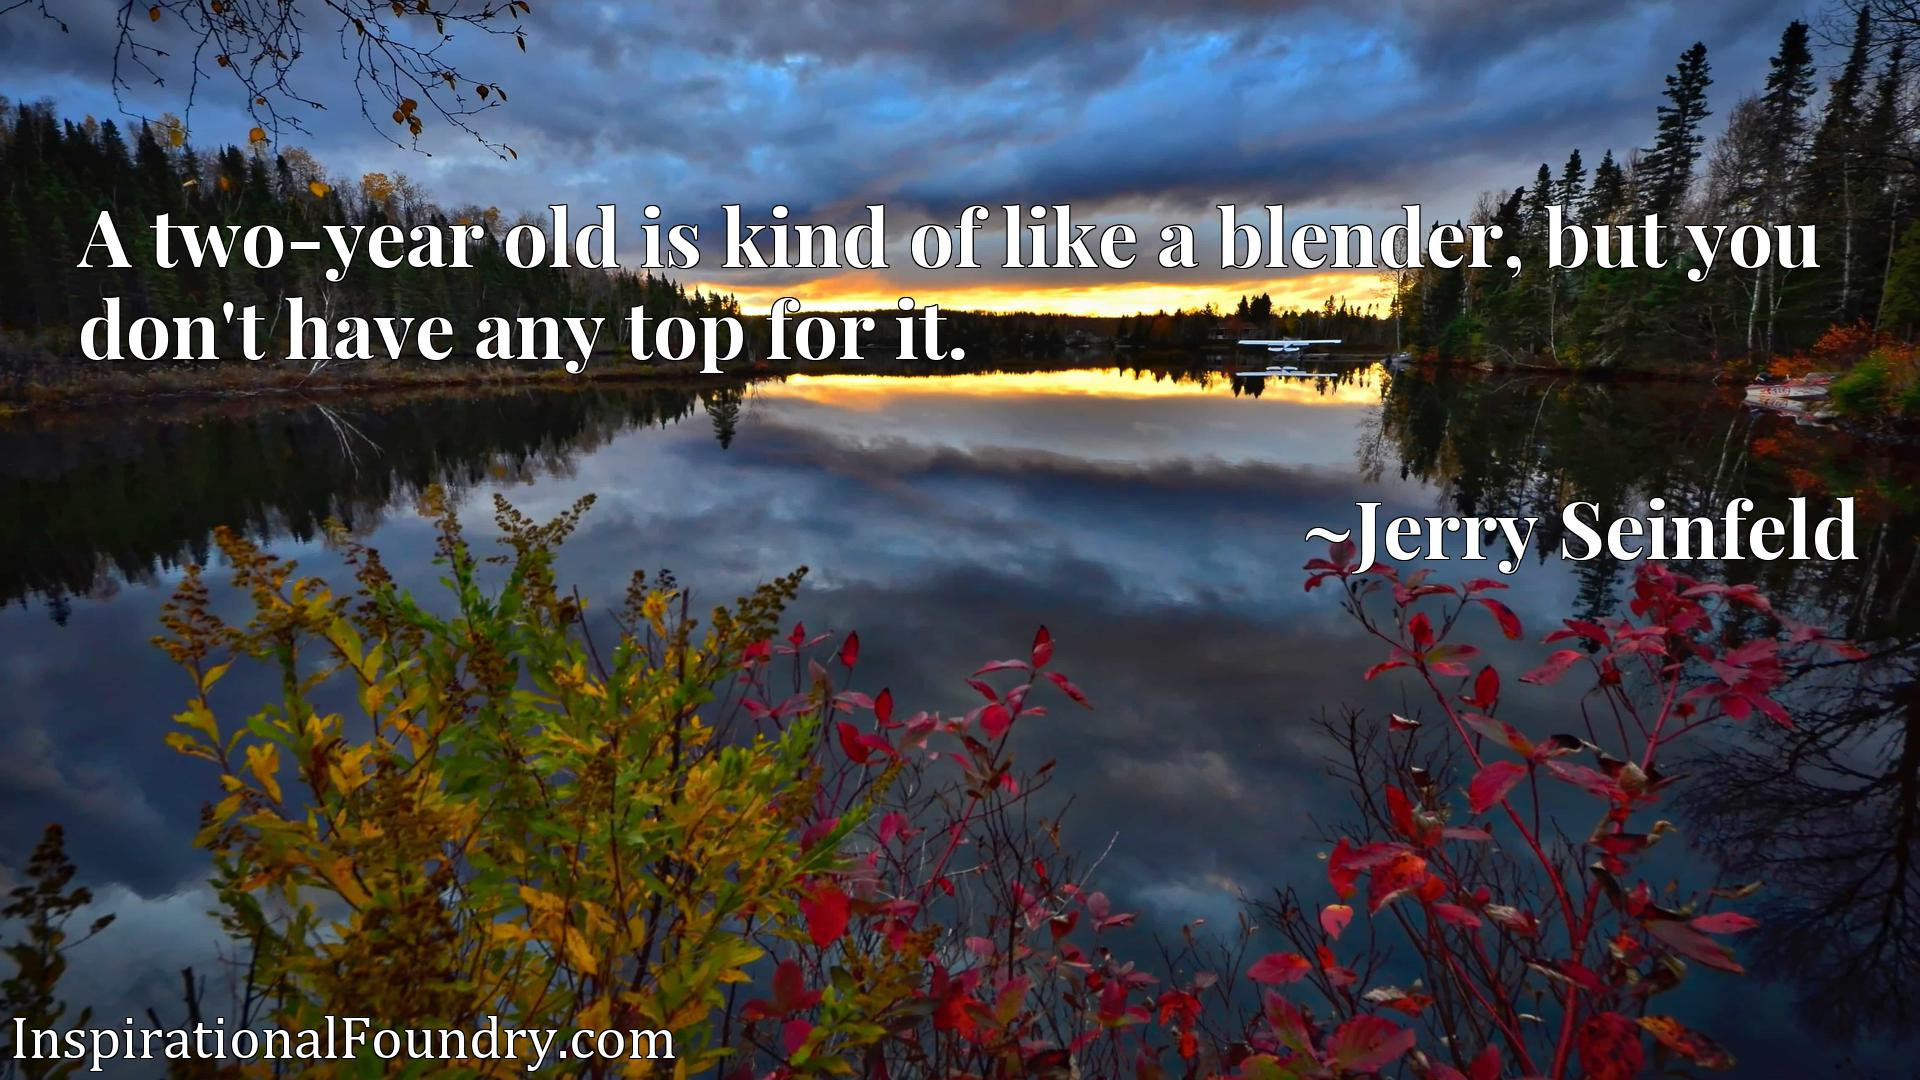 A two-year old is kind of like a blender, but you don't have any top for it.